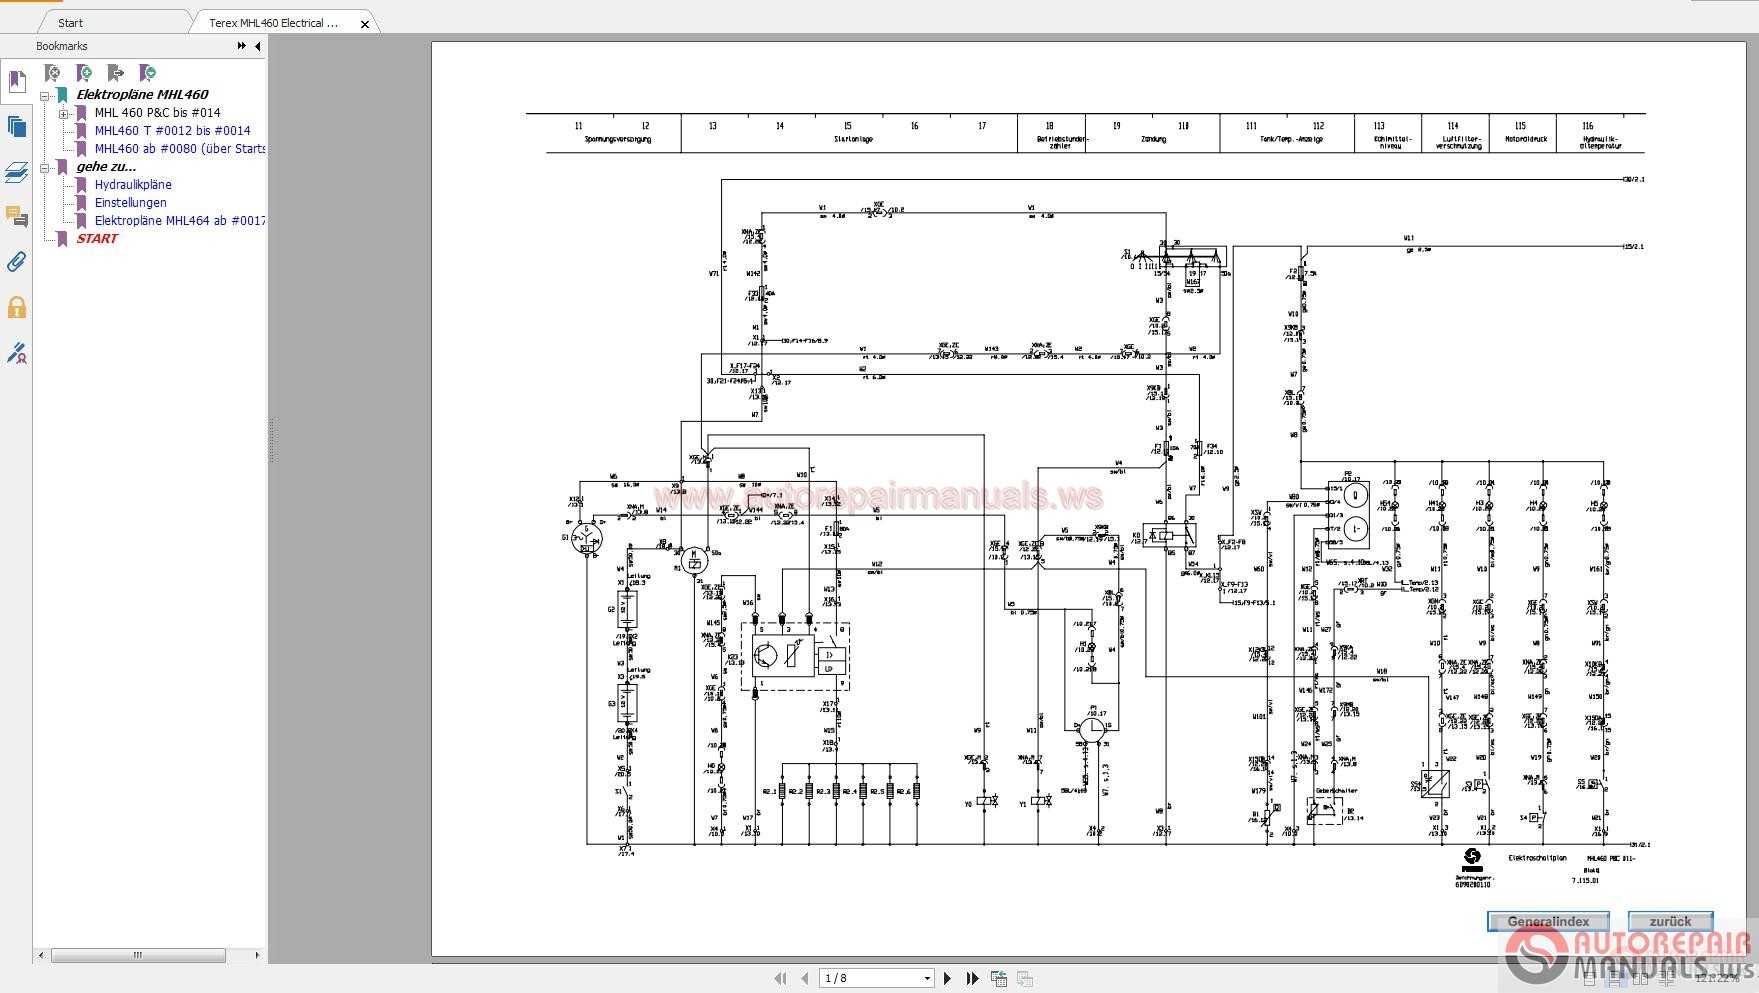 Terex Mhl460 Electrical Diagram